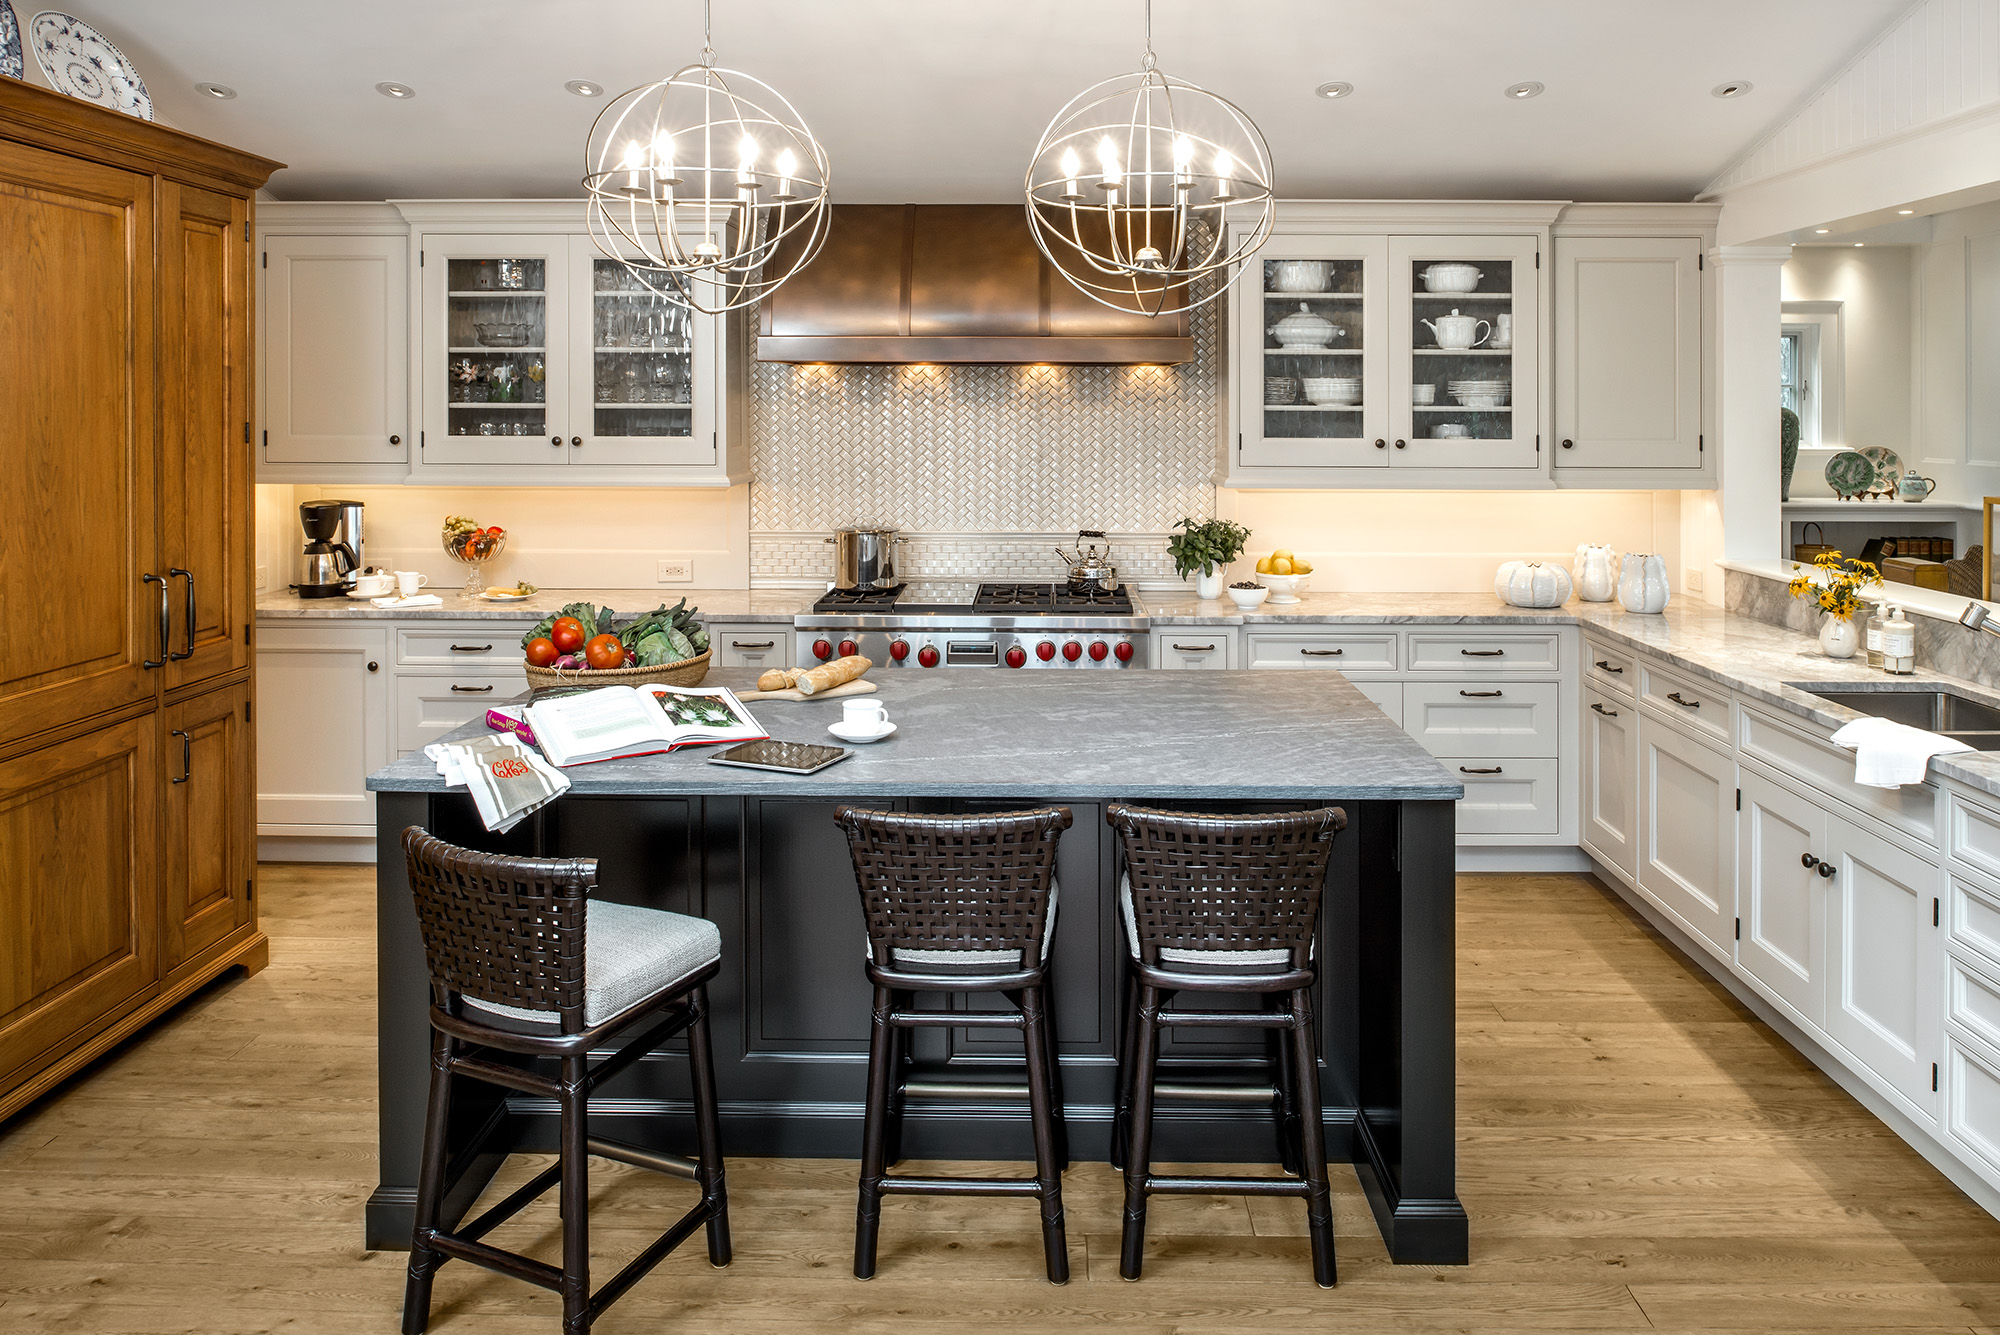 Kitchen By Design Johnston Ri Ri Architectural Commercial And Interior Design Photography